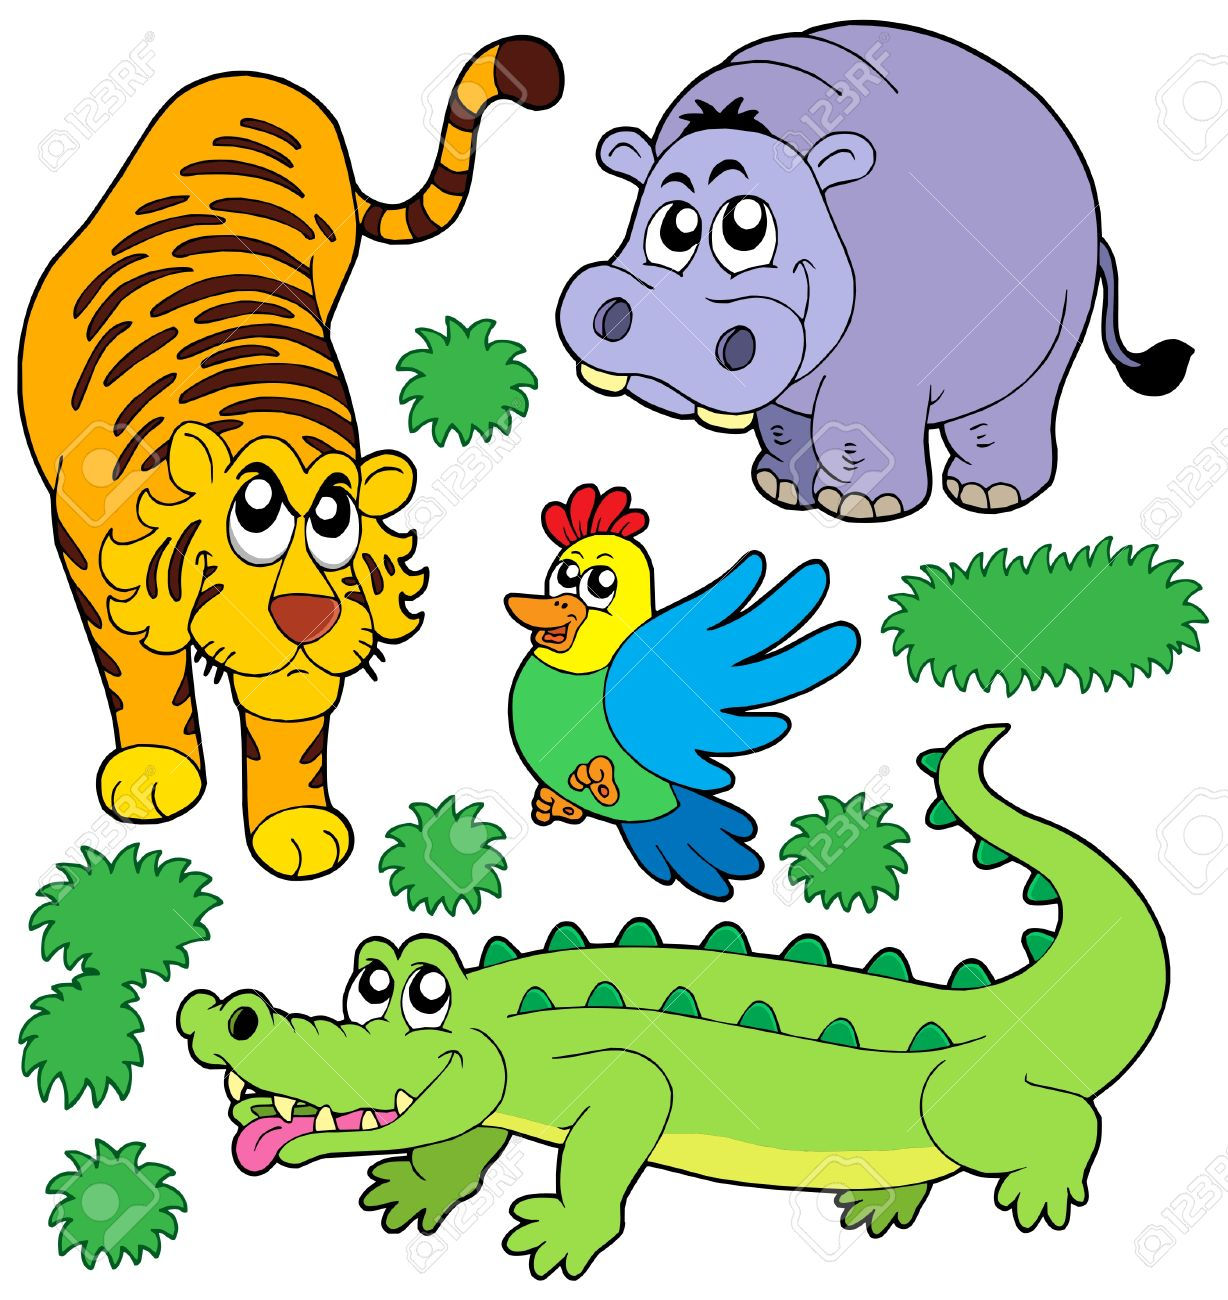 ZOO animals collection 5 - vector illustration. Stock Vector - 4016193